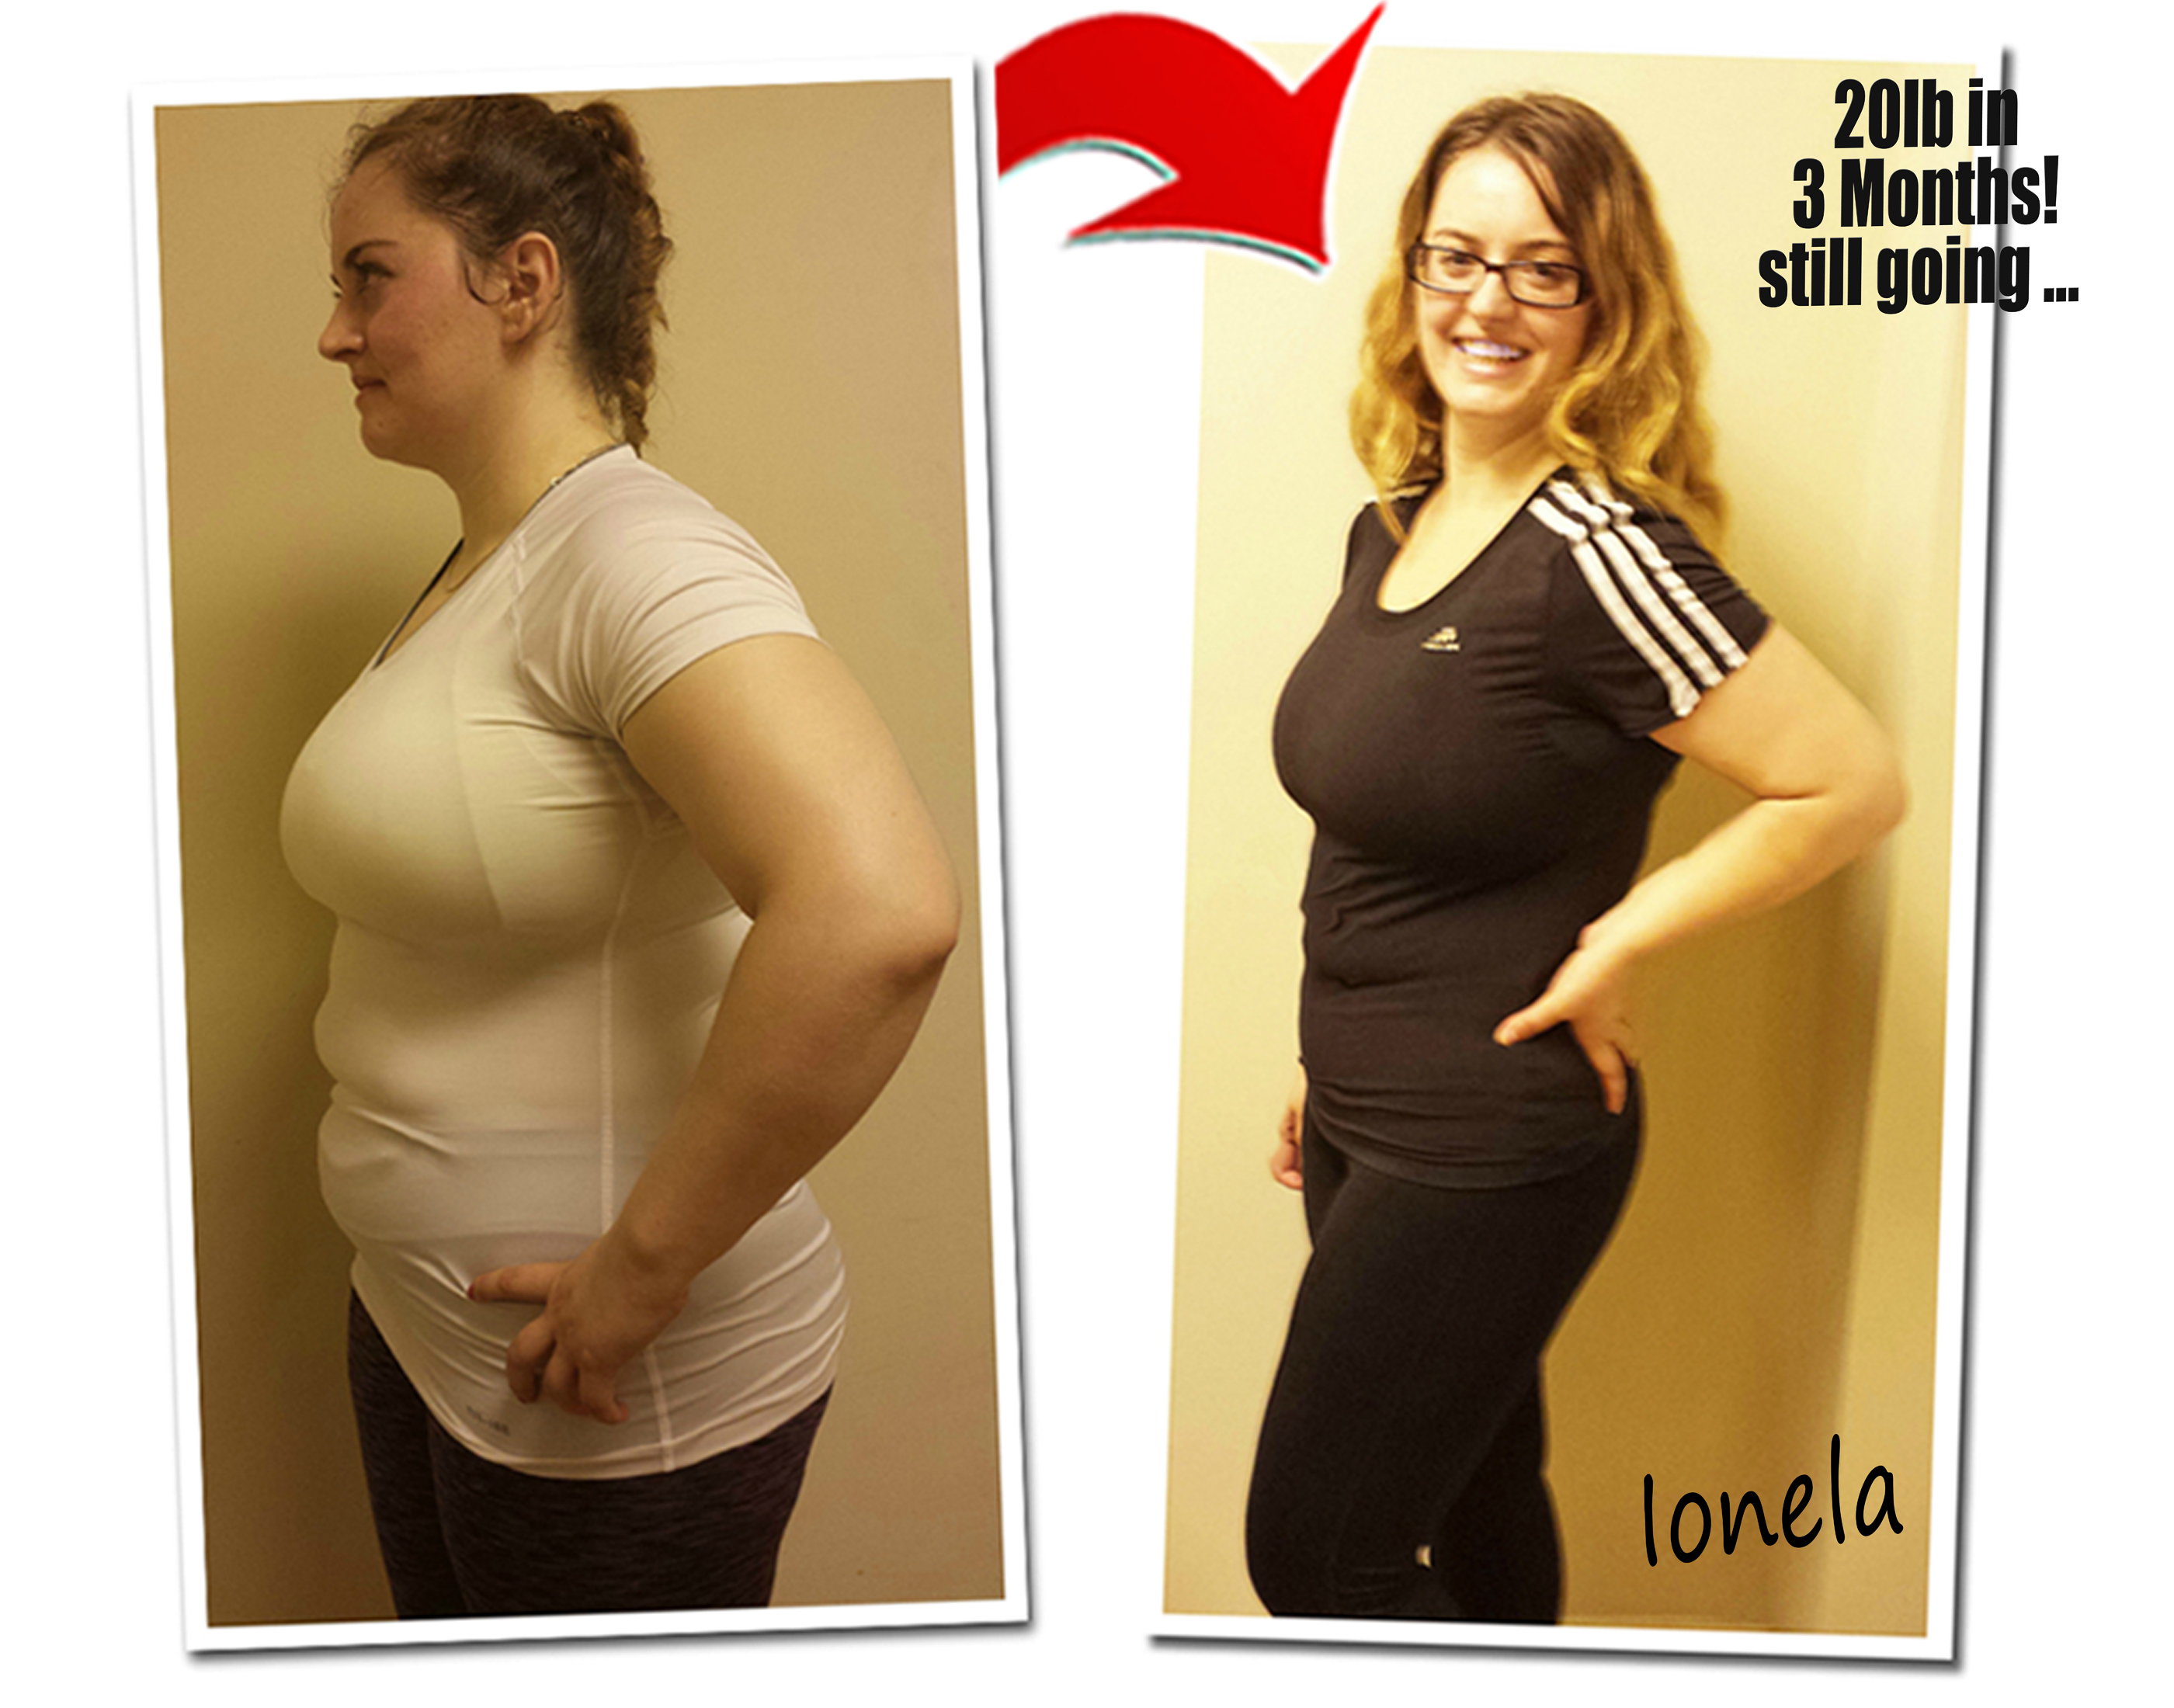 3 ways she lost 20lbs